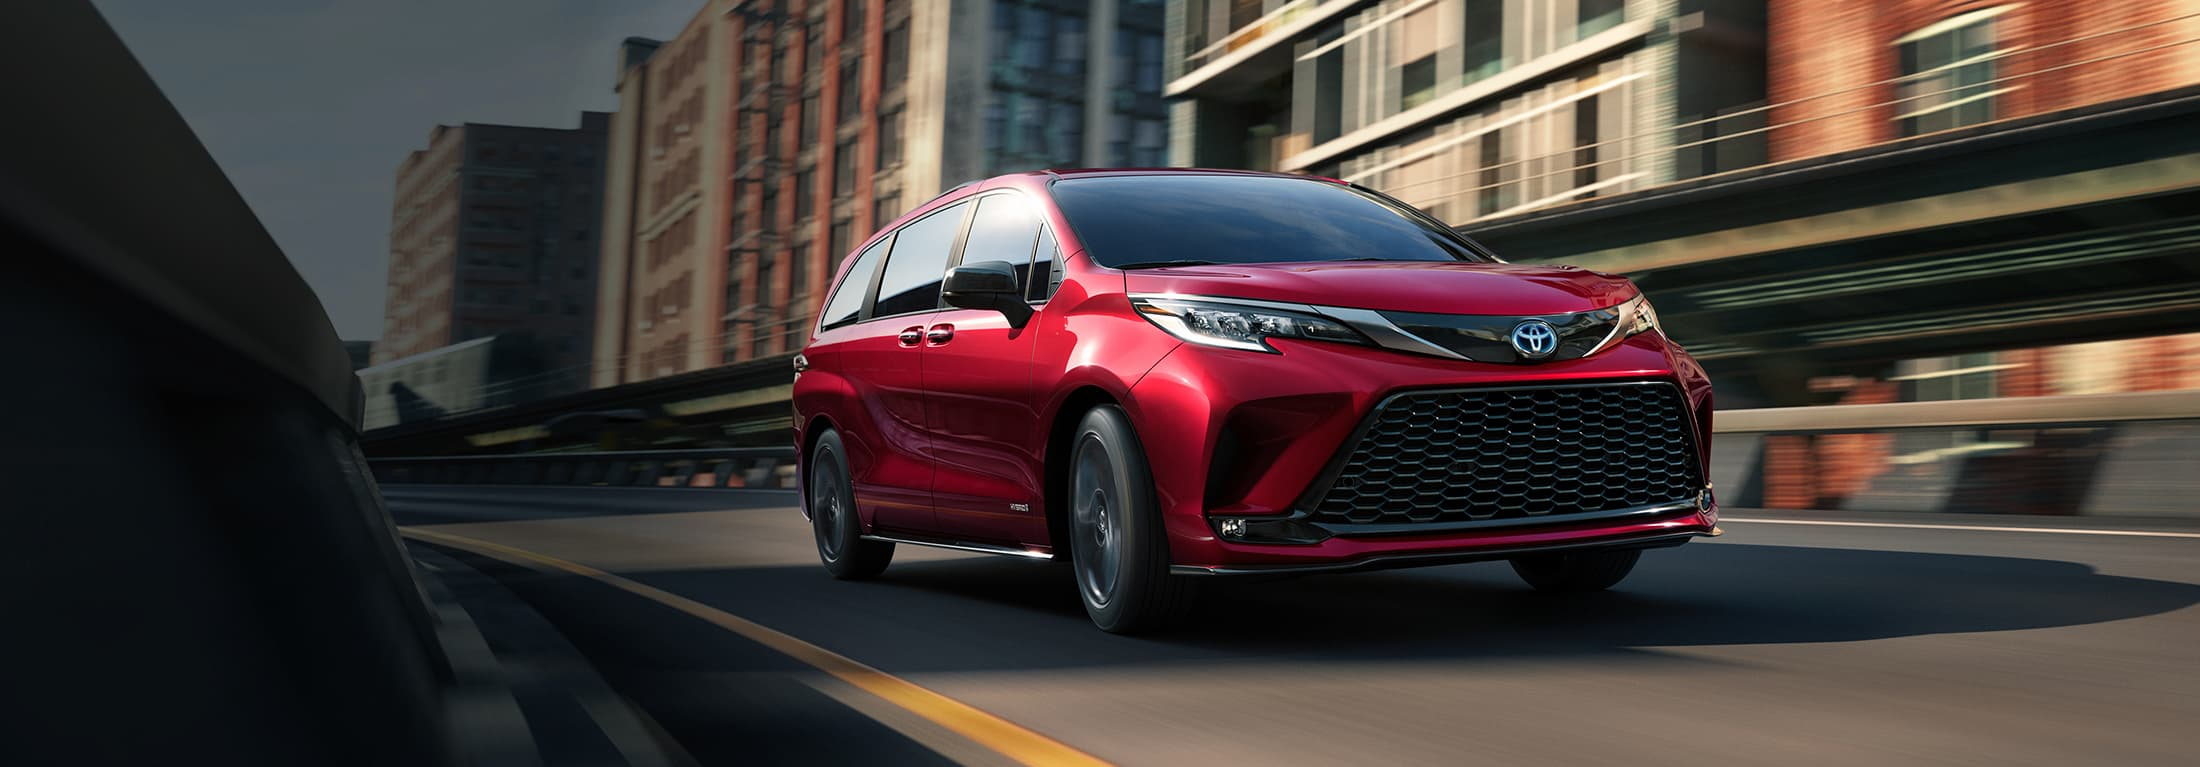 2021 Red Toyota Sienna driving on the road.